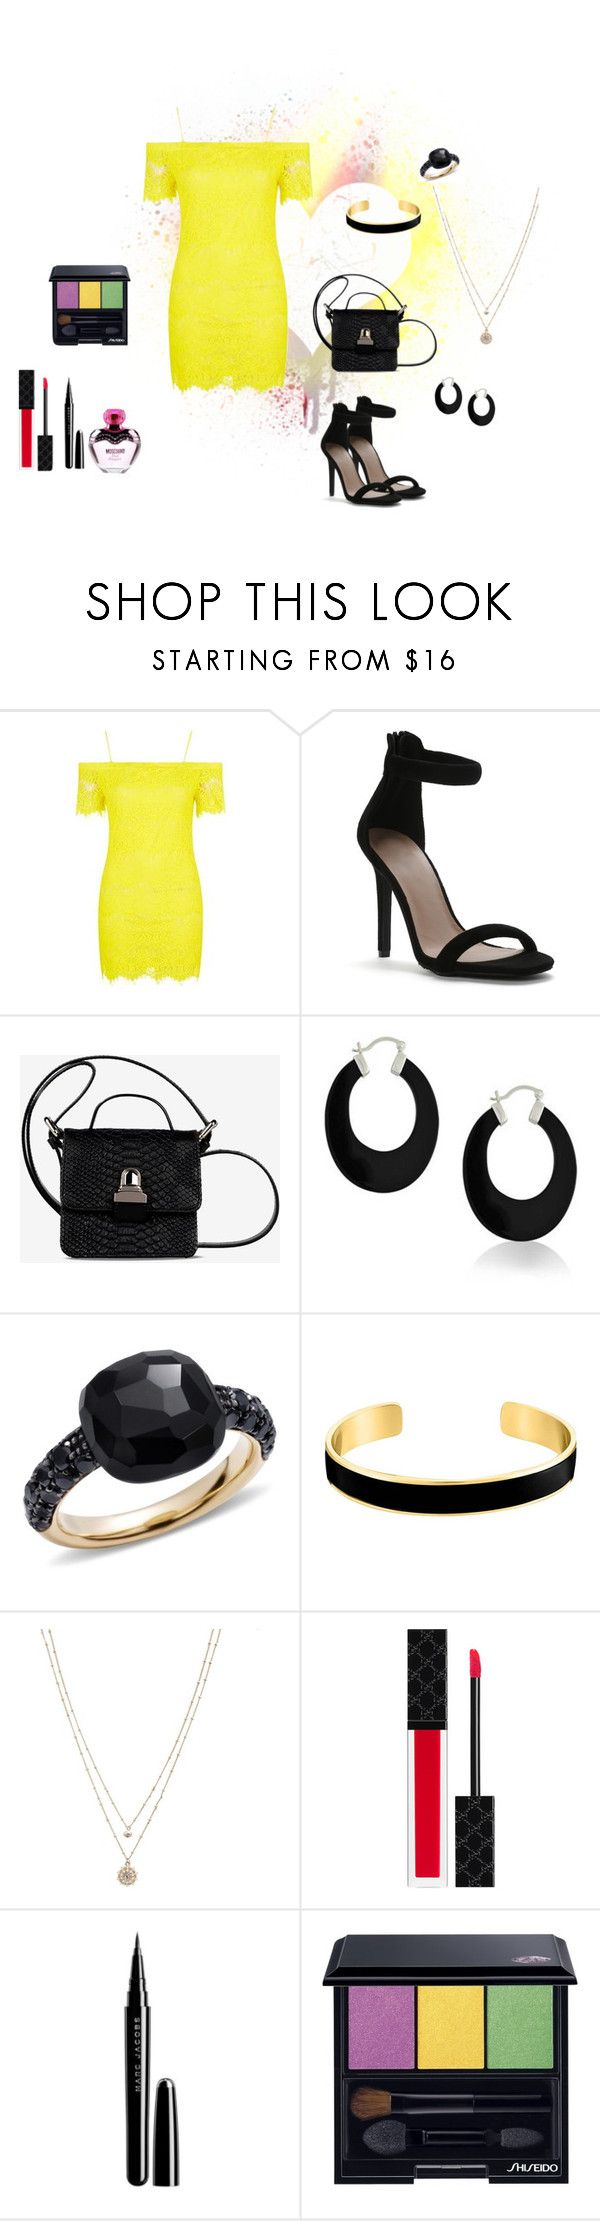 Yellow dress by kelly17-kalymnos on Polyvore featuring Topshop, MM6 Maison Margiela, LC Lauren Conrad, Bling Jewelry, Pomellato, VANINA, Shiseido, Gucci, Marc Jacobs and Moschino